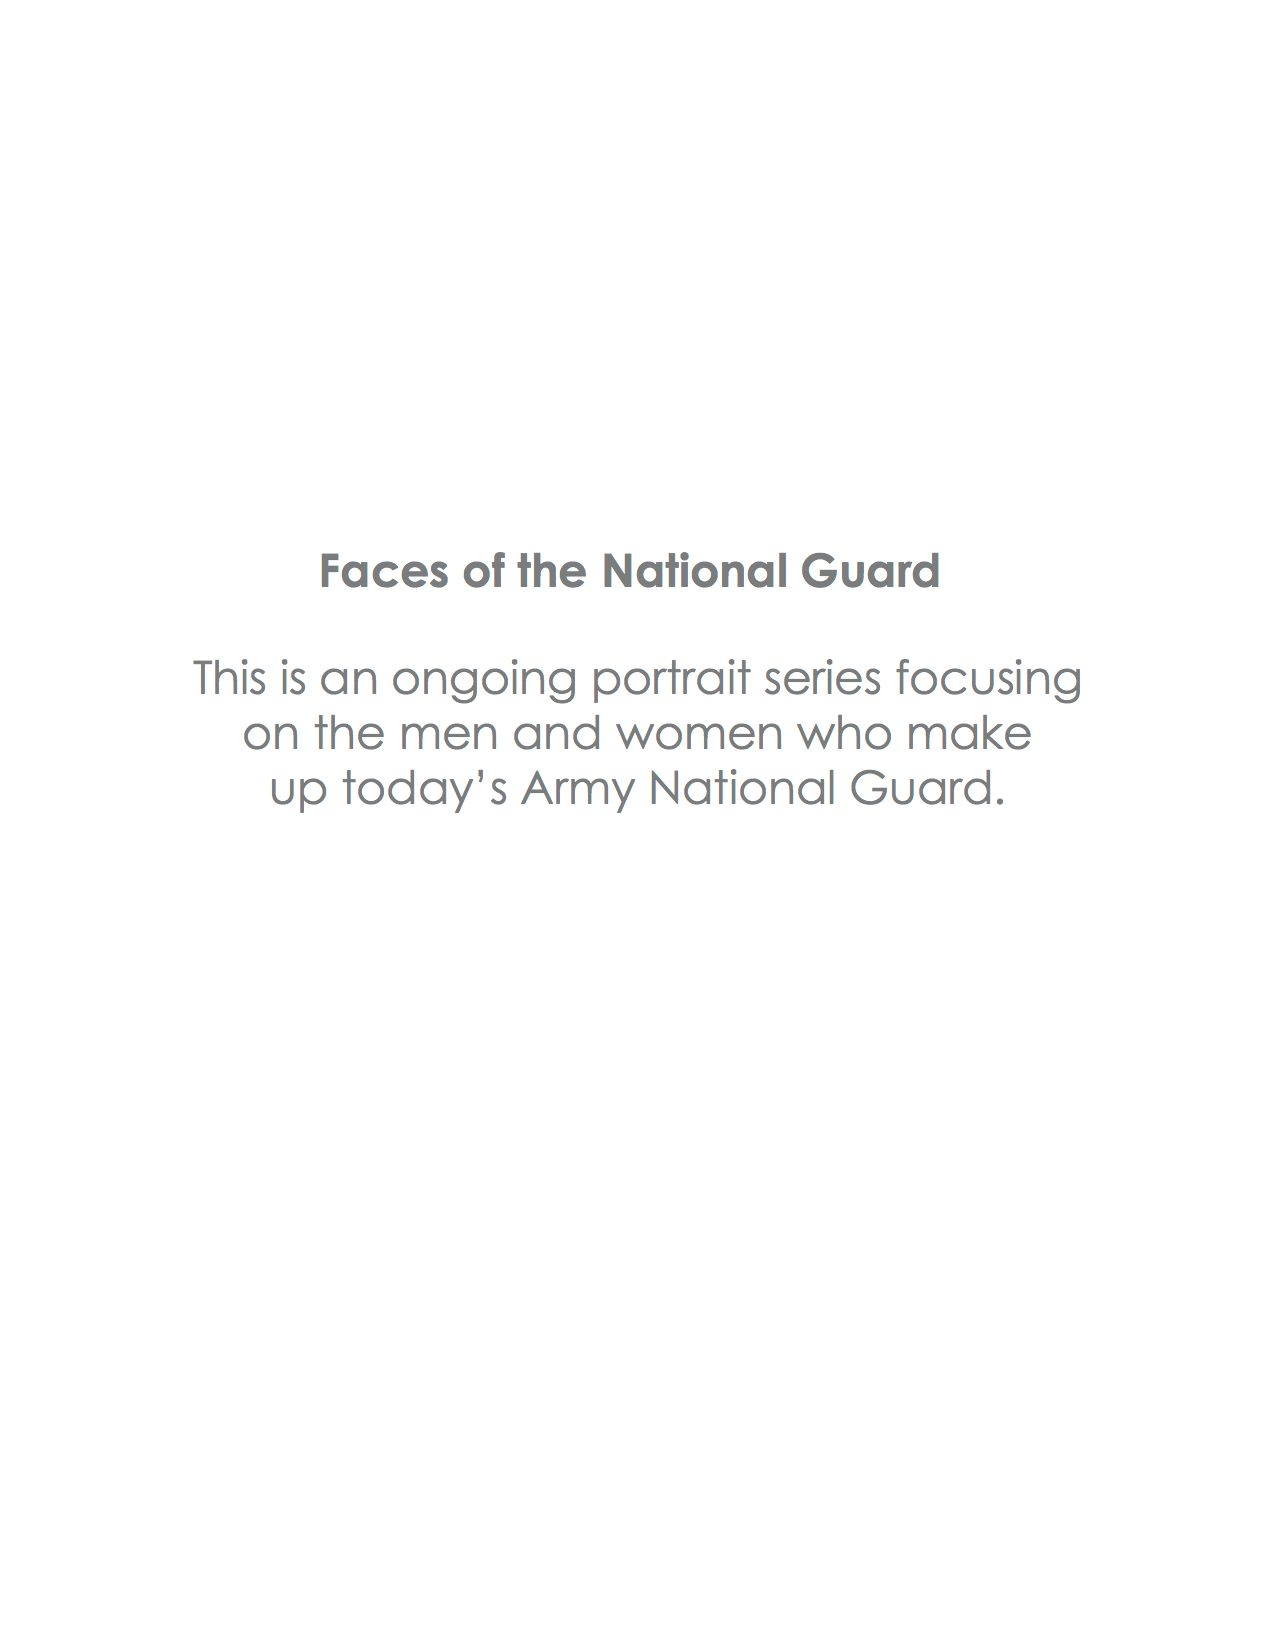 7_faces_of_national_guard.jpg